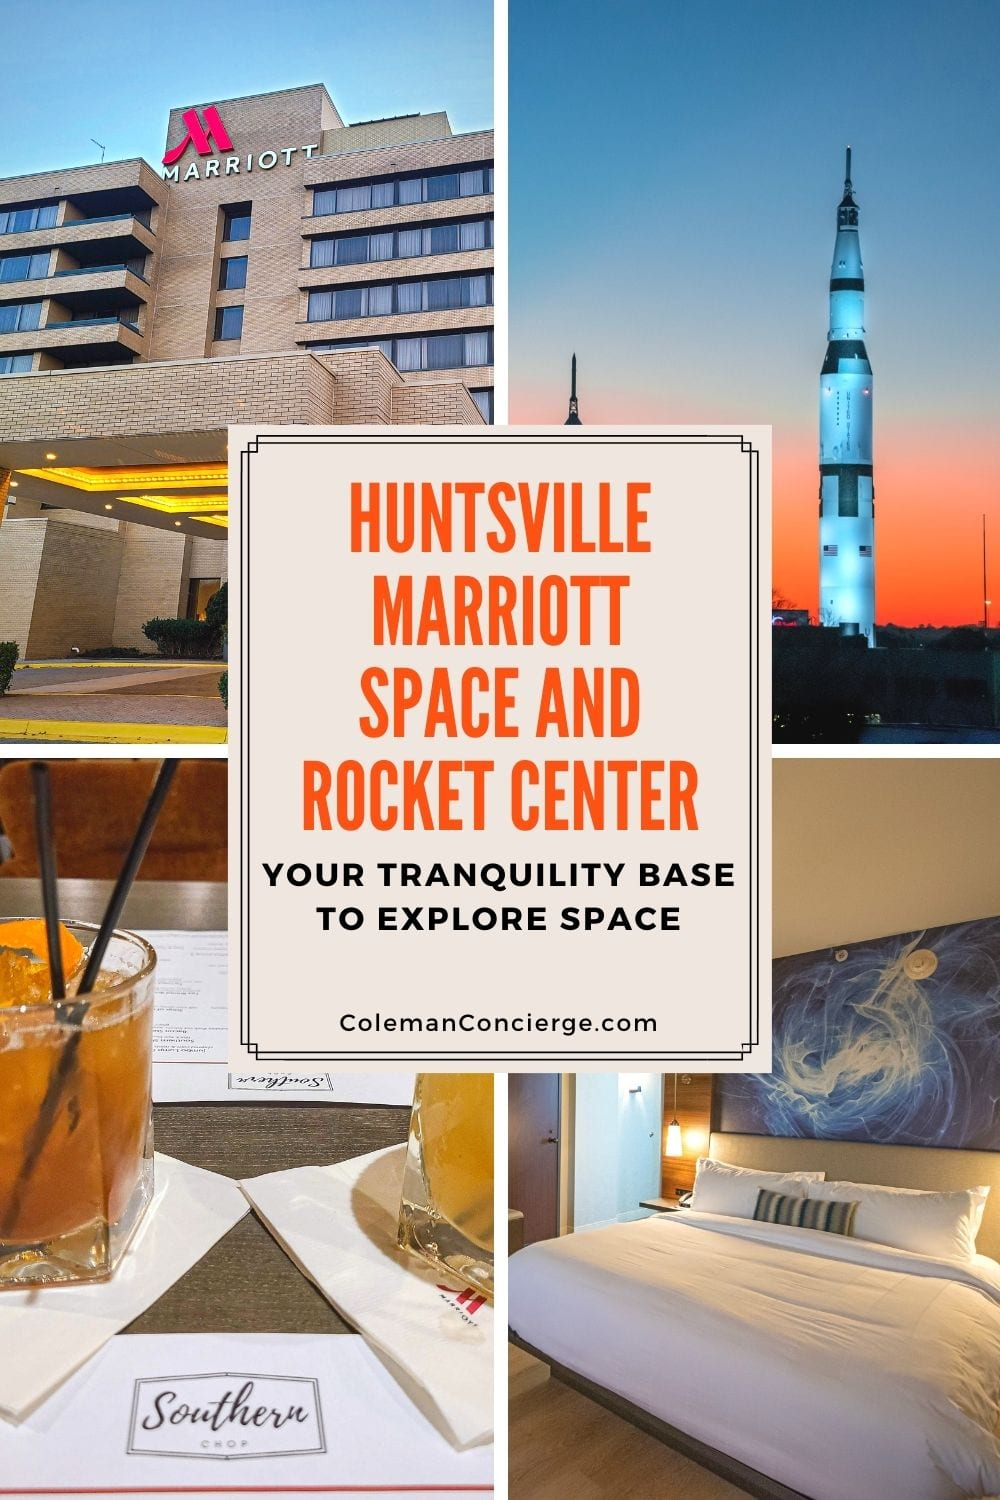 Images from Huntsville Marriott Space and Rocket Center